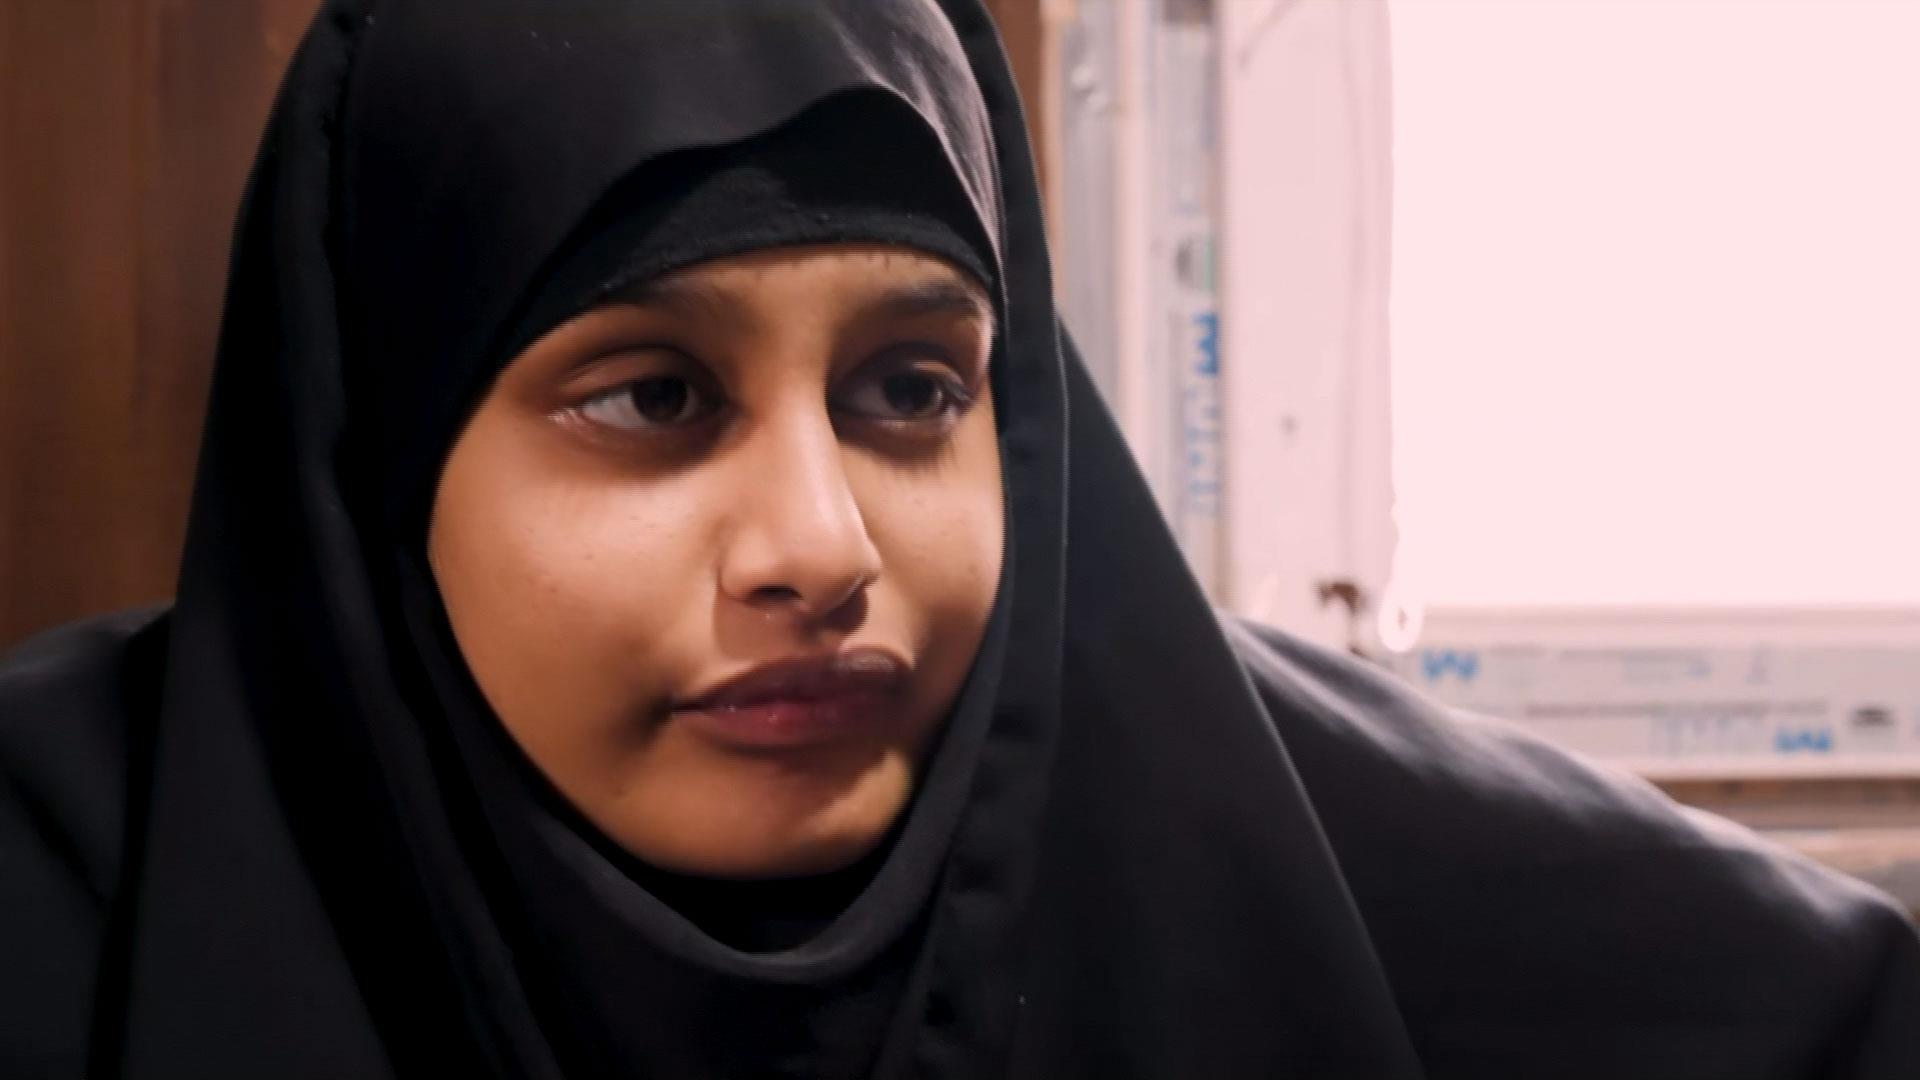 British teen joined ISIS in Syria, asks to return to U.K.